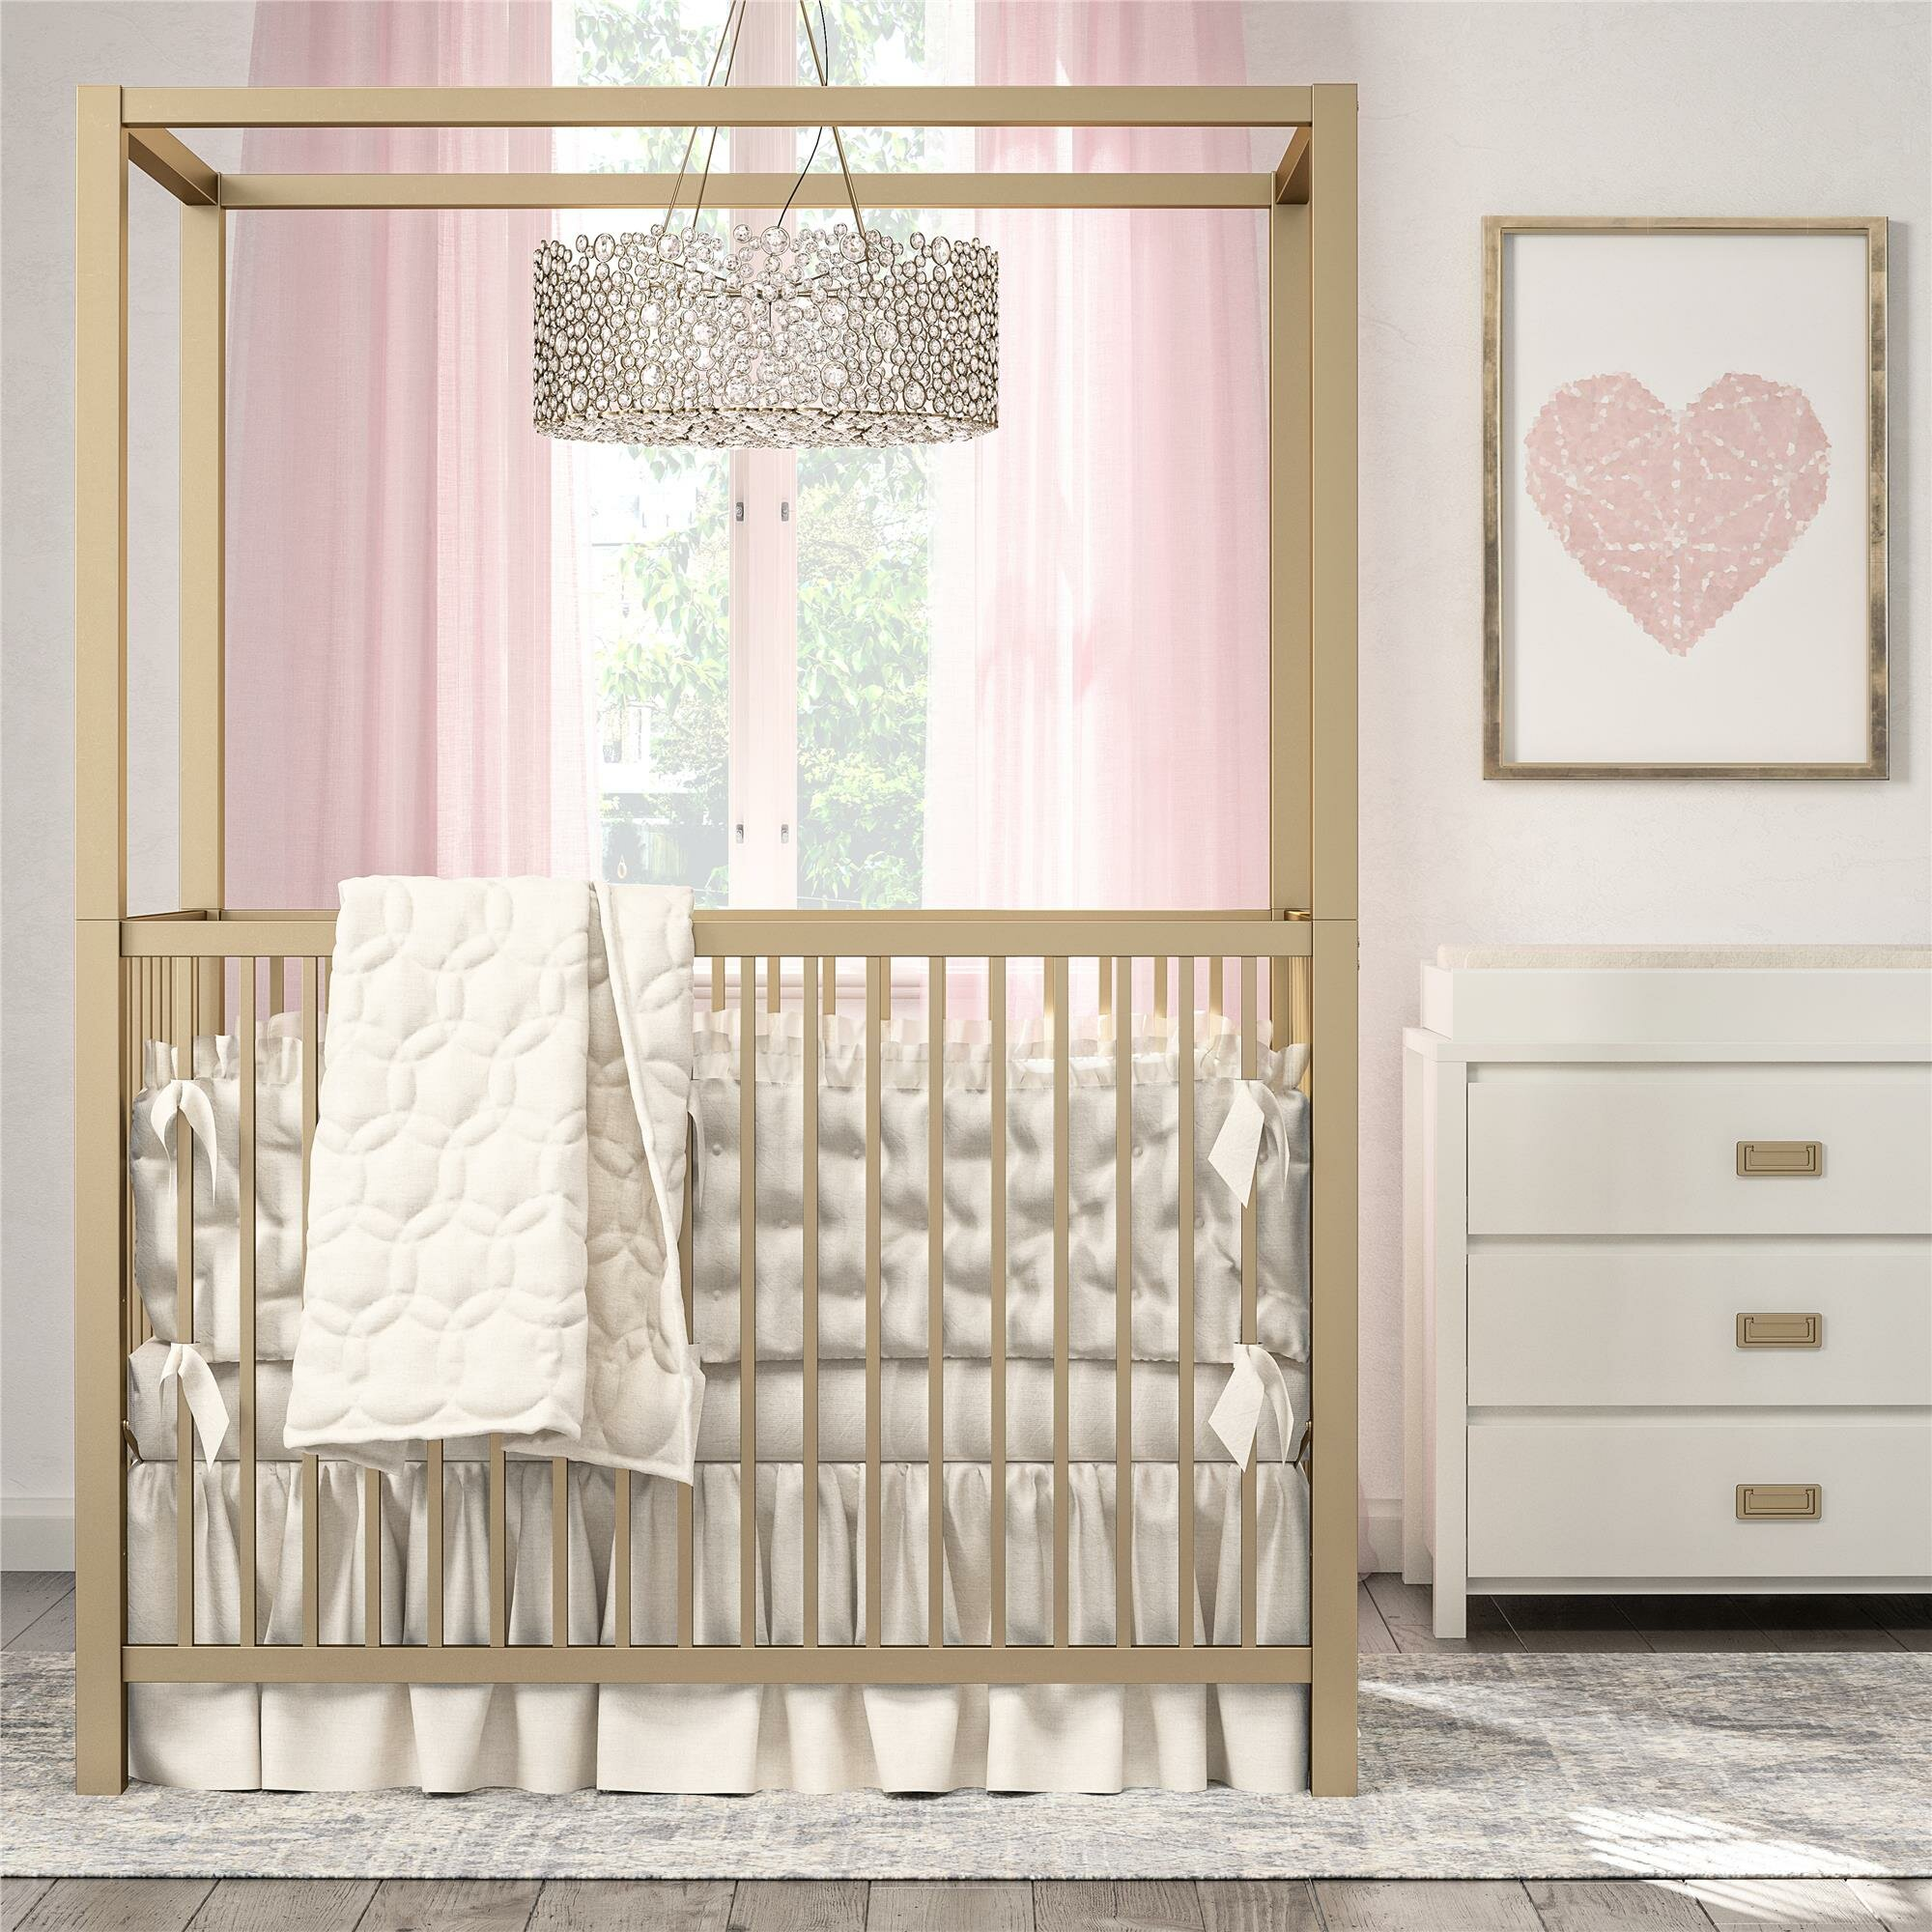 Outstanding Monarch Hill Haven Canopy Crib Download Free Architecture Designs Embacsunscenecom